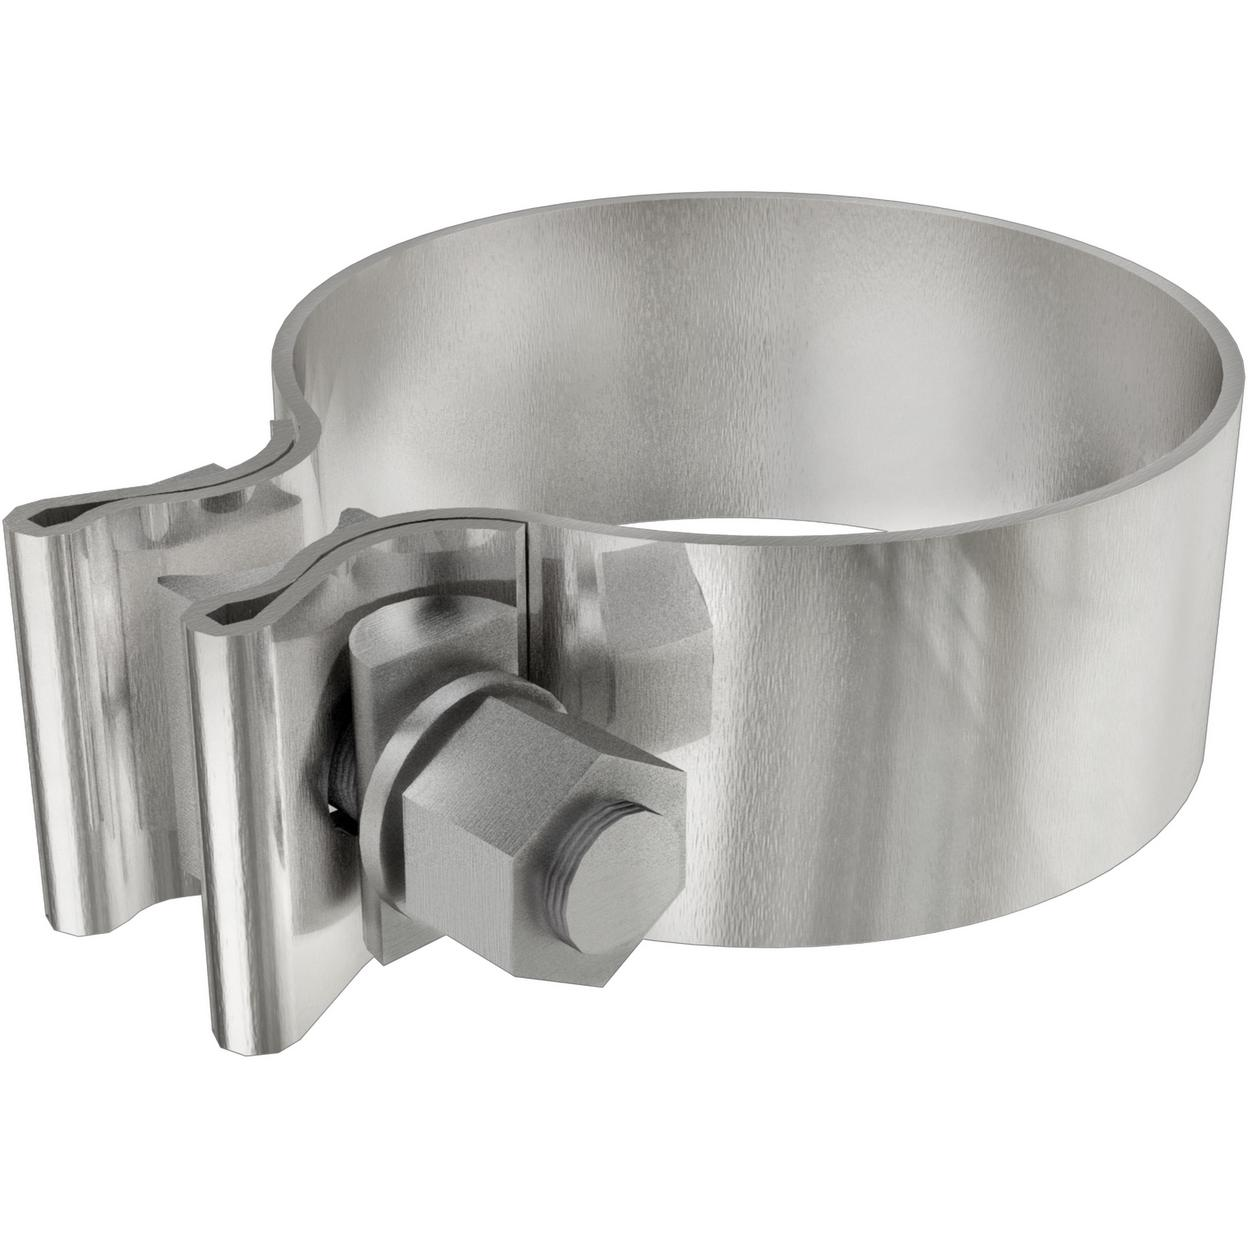 Lap Joint Band Clamp - 3.50in.